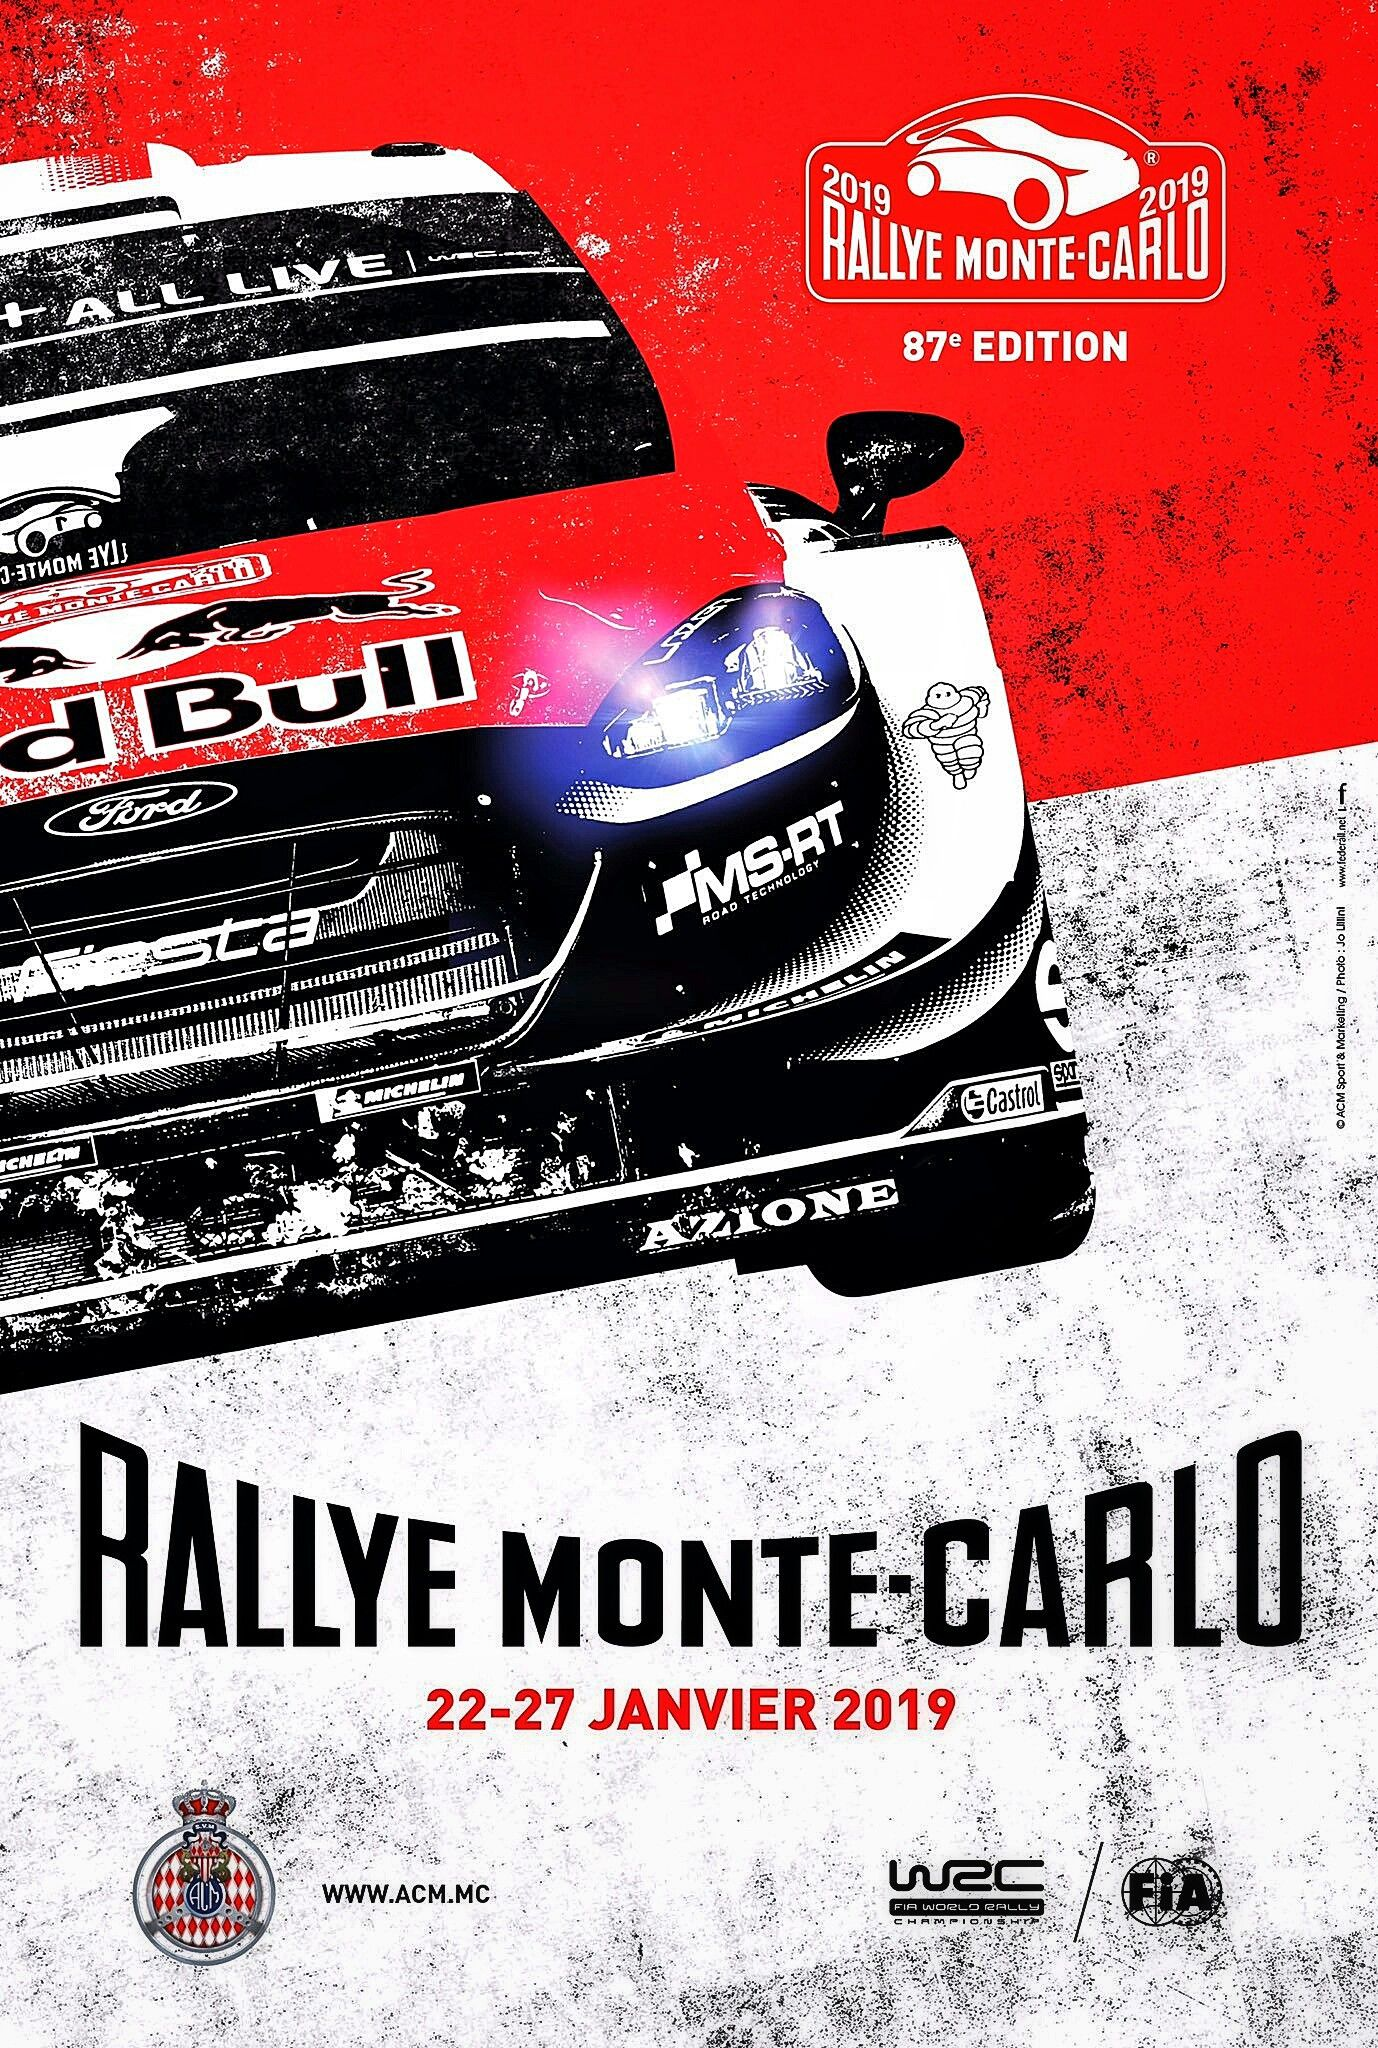 2019 Rallye Monte Carlo official poster and cover art for